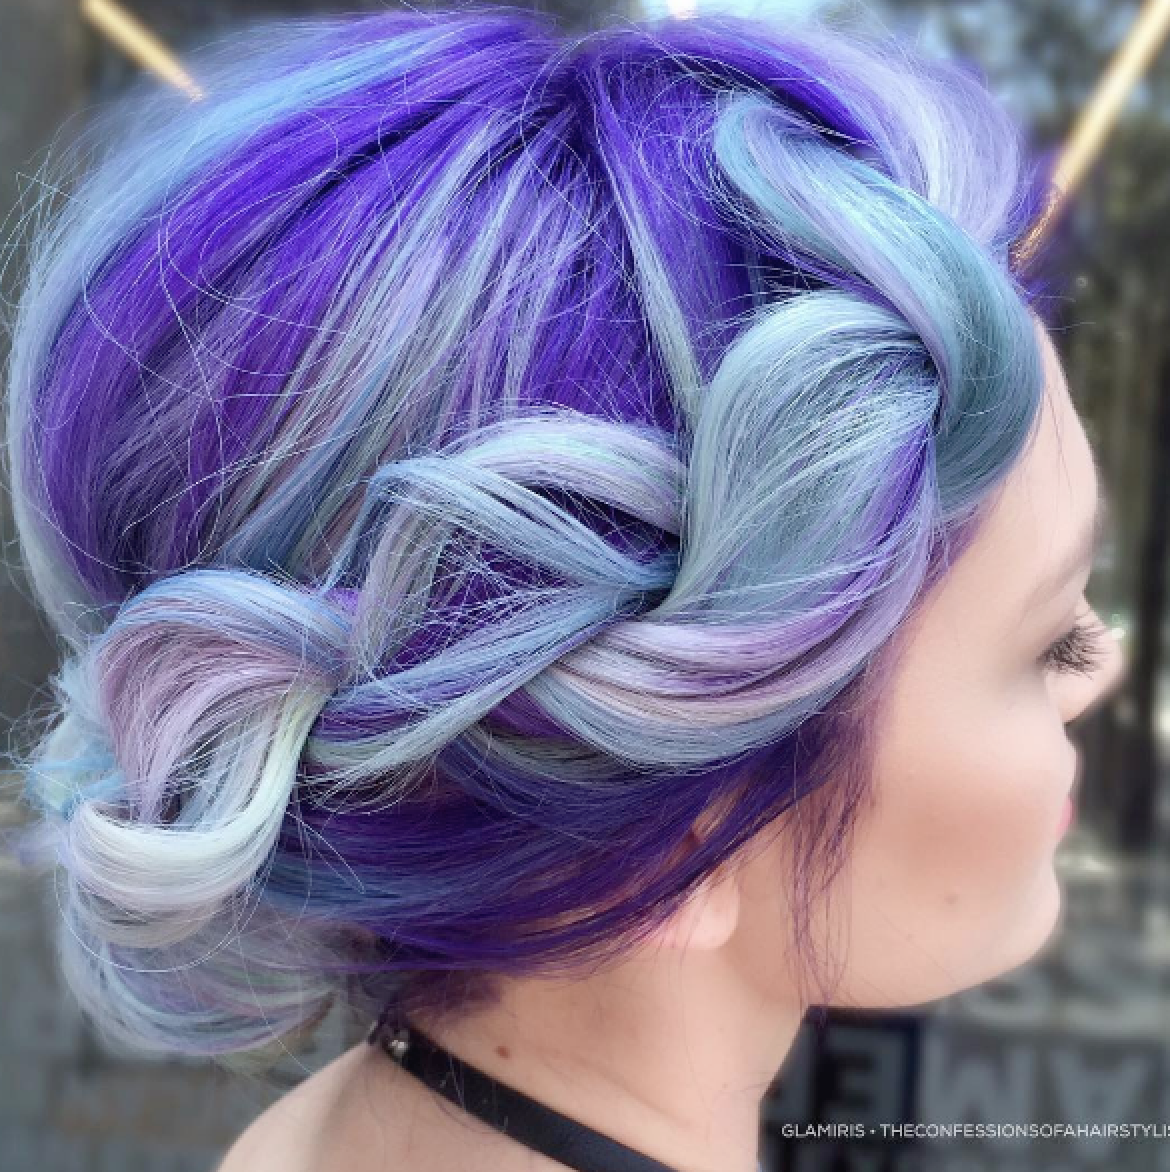 This modern and romantic braided up-do by @glamiris is perfection.